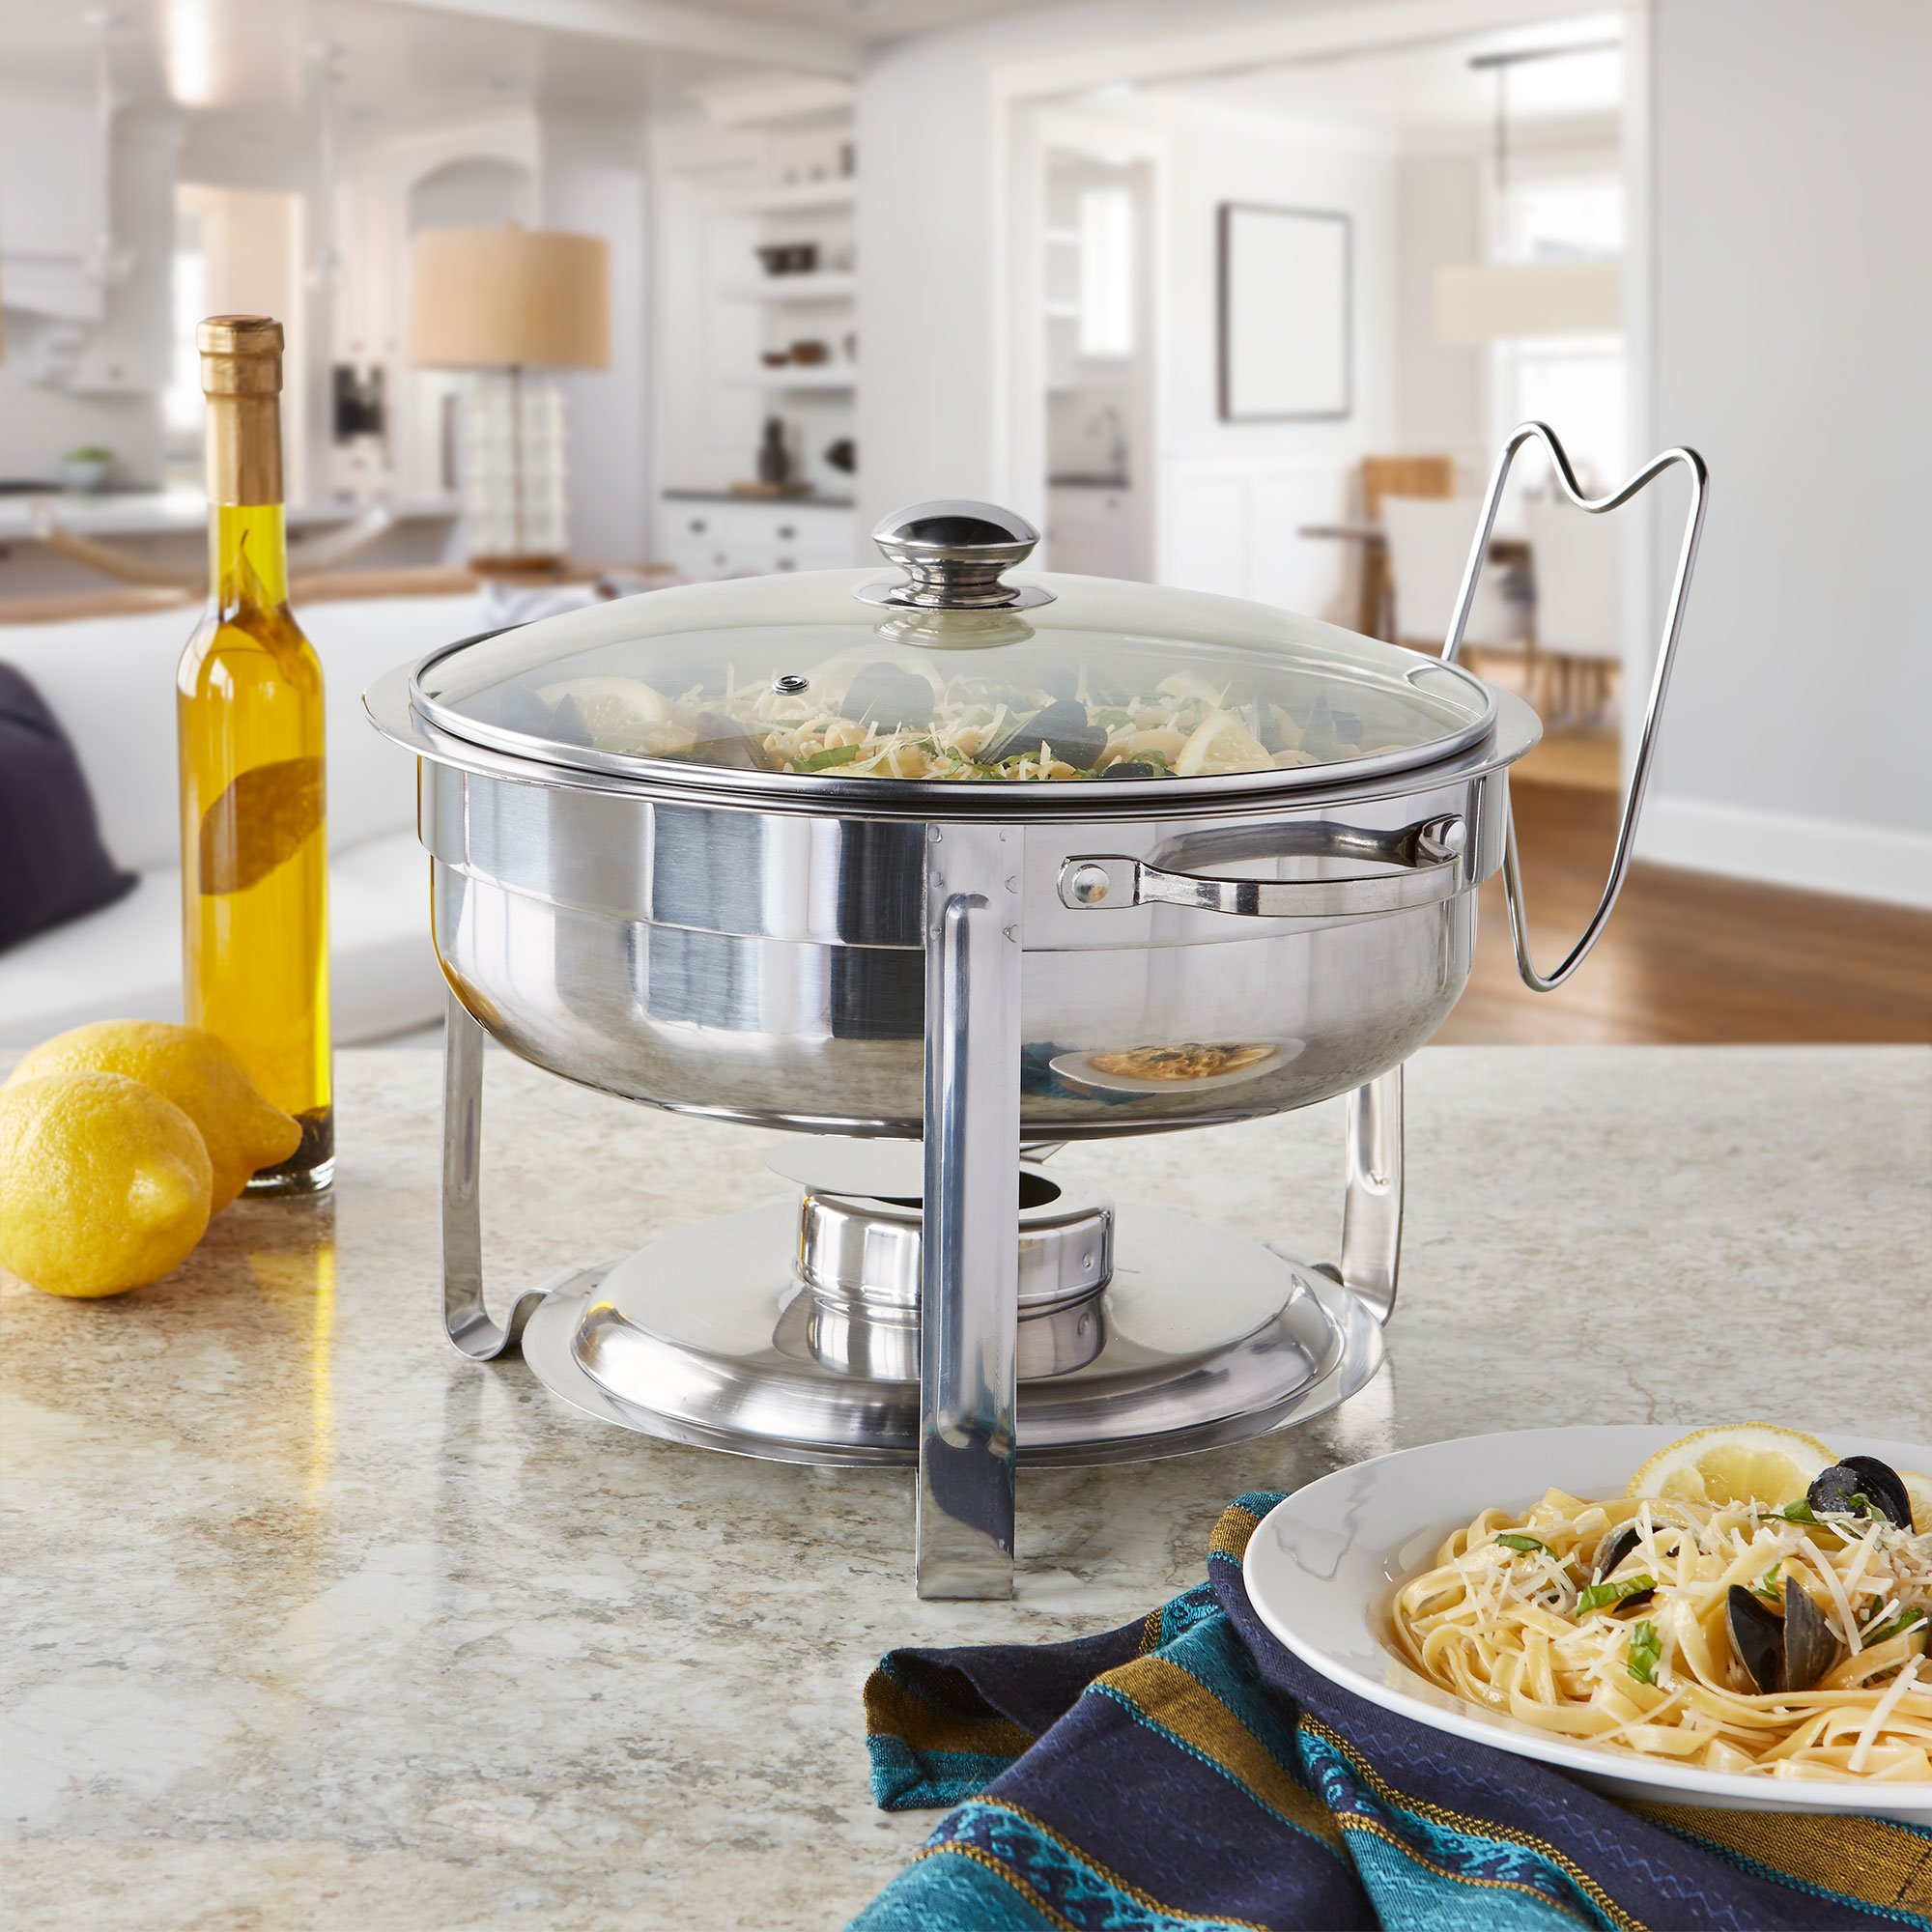 Artisan Stainless Steel Round Buffet Chafer with Glass Lid, 4-Quart Capacity by Artisan (Image #6)